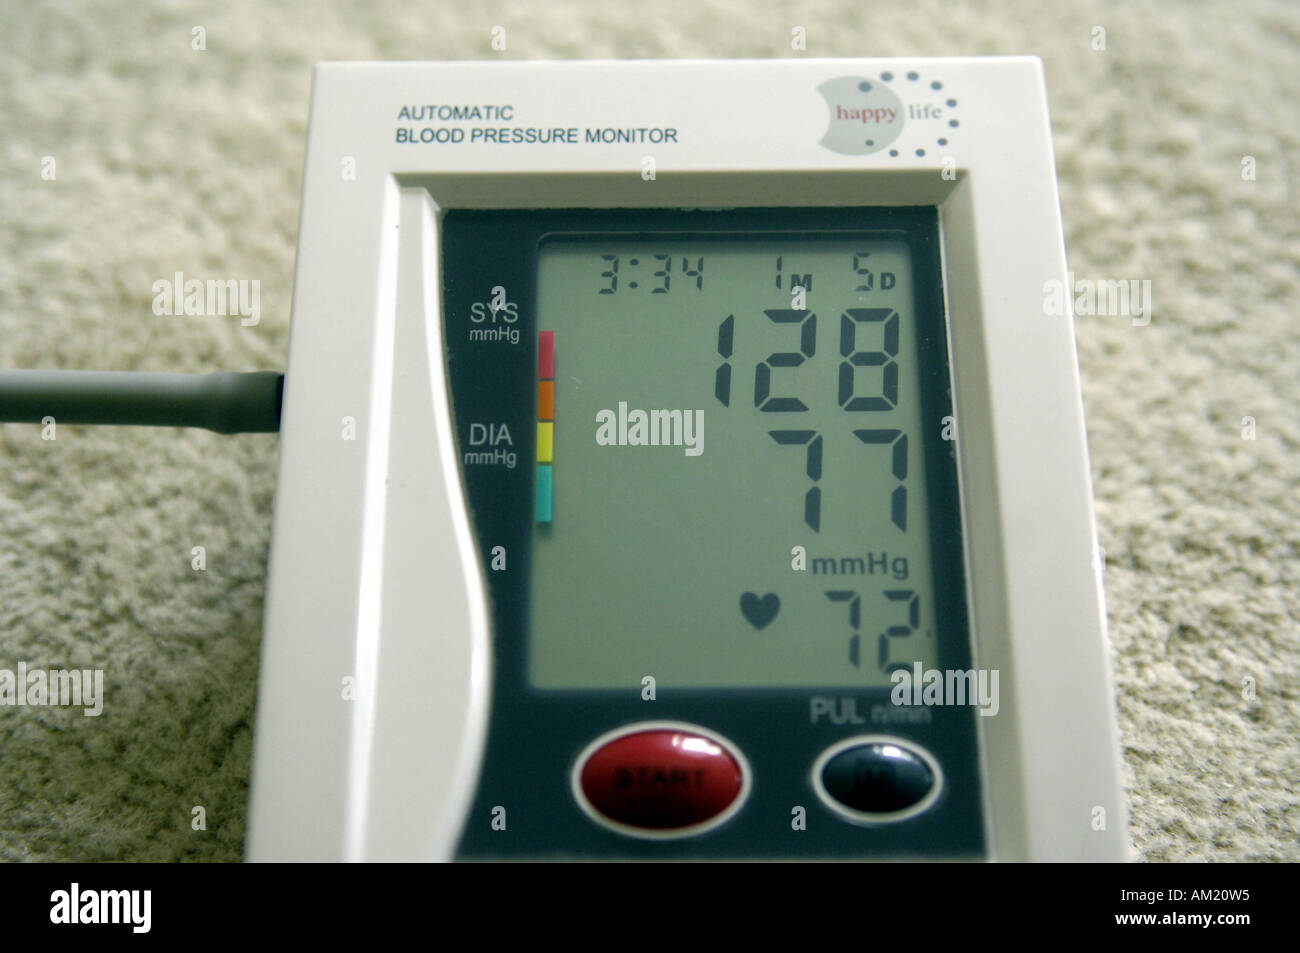 how to get a free blood pressure machine